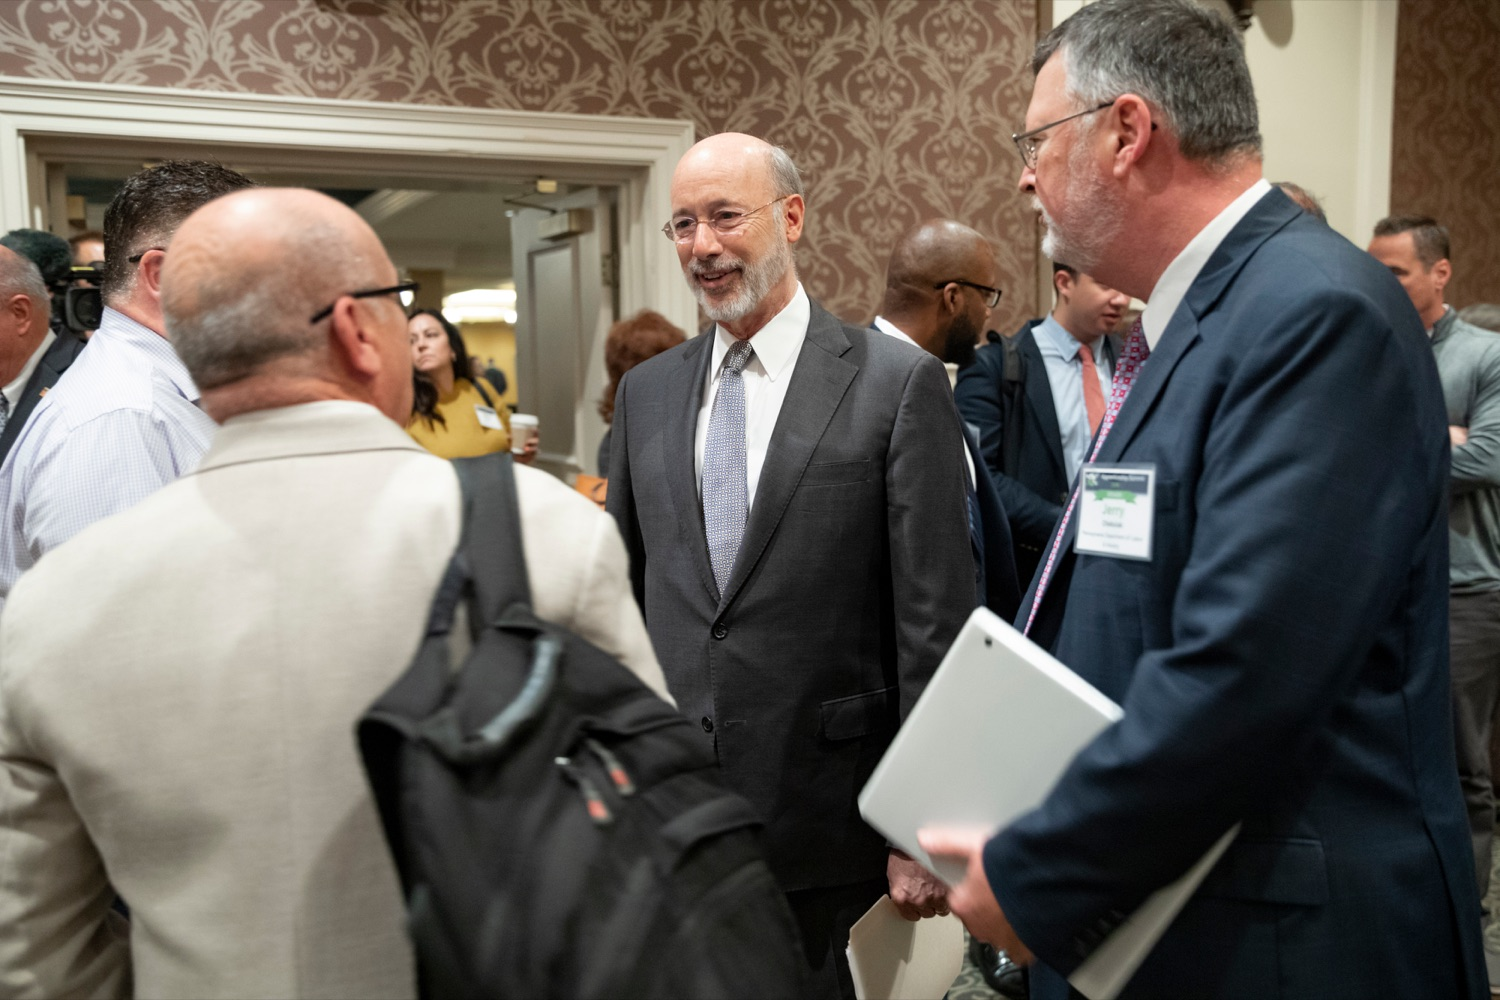 "<a href=""http://filesource.abacast.com/commonwealthofpa/photo/17520_LandI_Apprenticeships_NK_004.JPG"" target=""_blank"">⇣ Download Photo<br></a>Pennsylvania Governor Tom Wolf smiles with Jerry Oleksiak, secretary for Pennsylvania department of Labor and Industry, during the 2019 Pennsylvania Apprenticeship Summit at Hershey Lodge on Thursday, October 31, 2019."